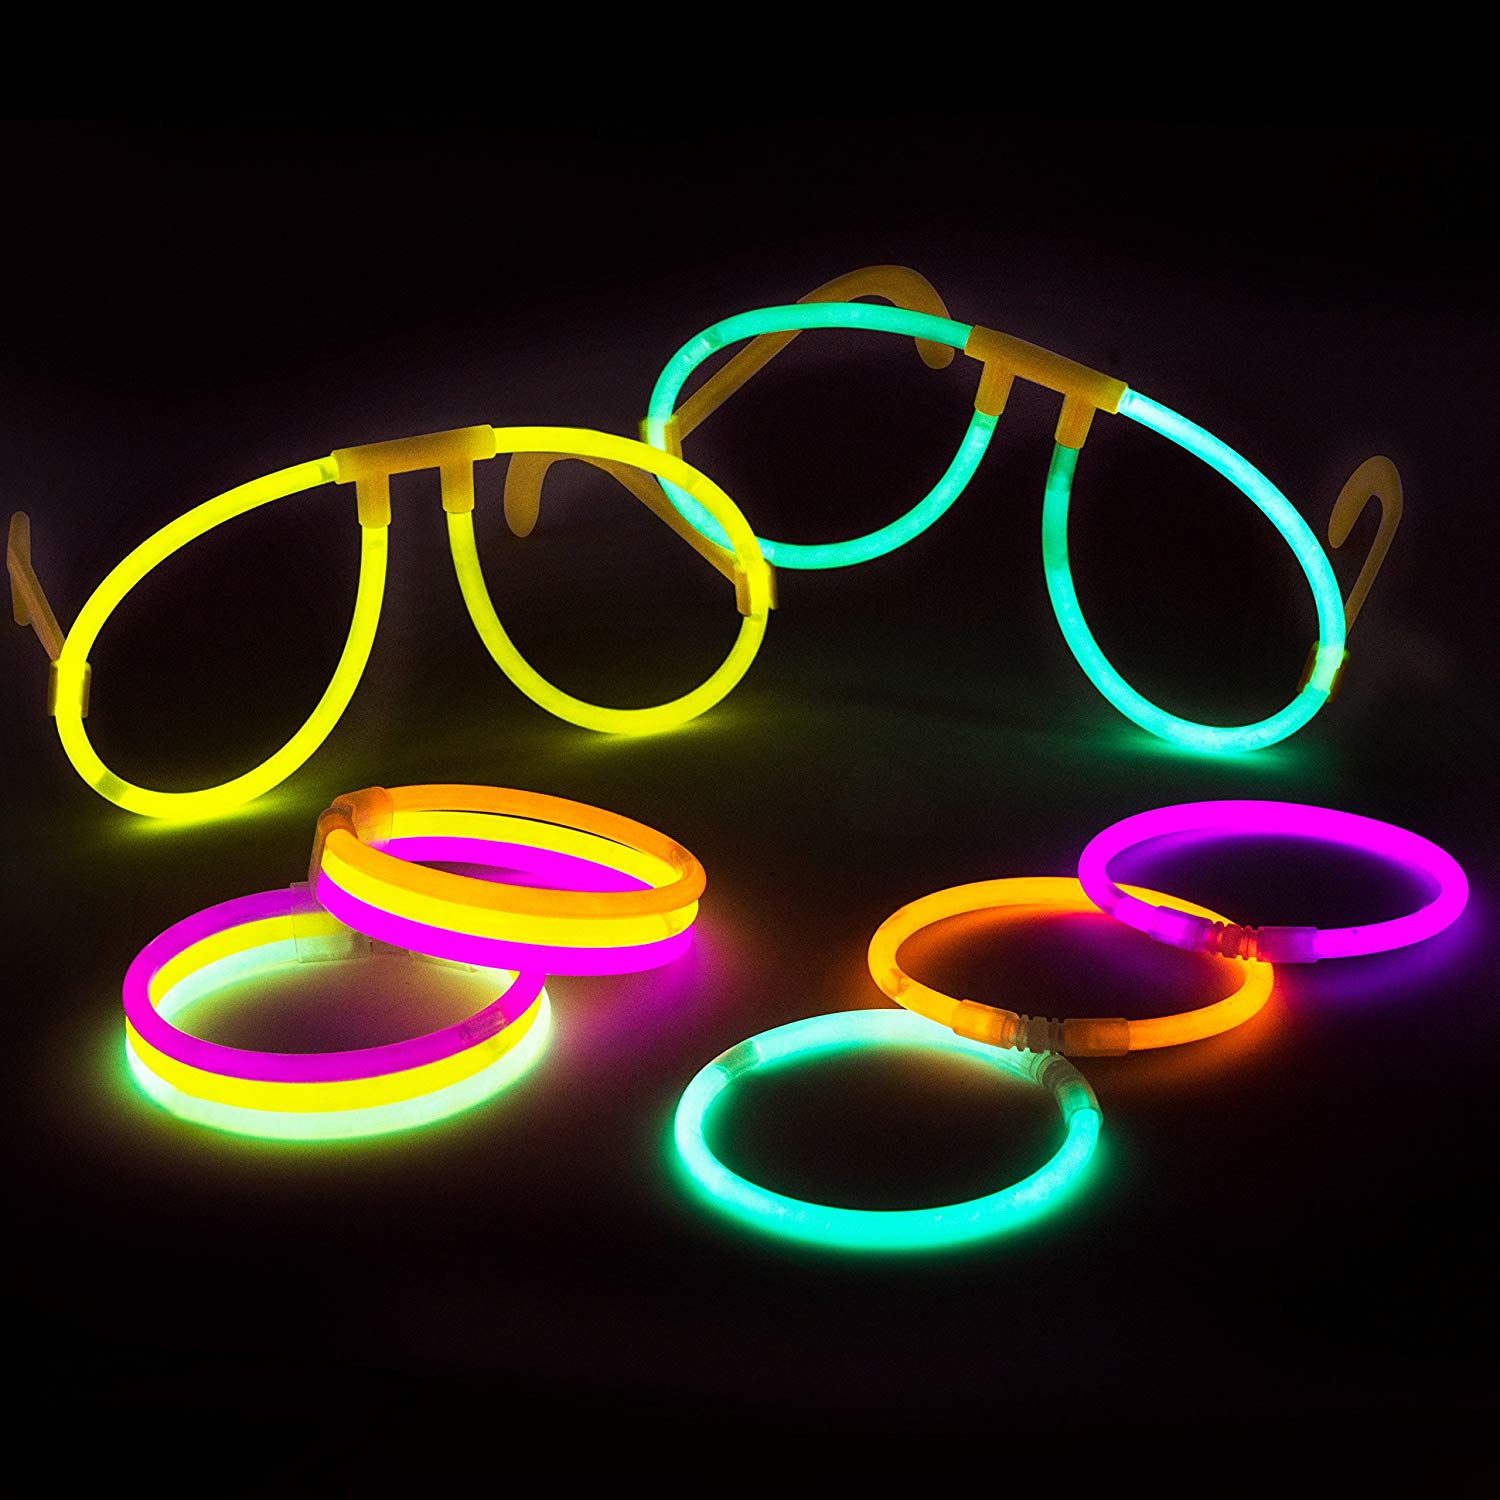 100 glow stick party pack - 100 mixed color 8 premium glowsticks